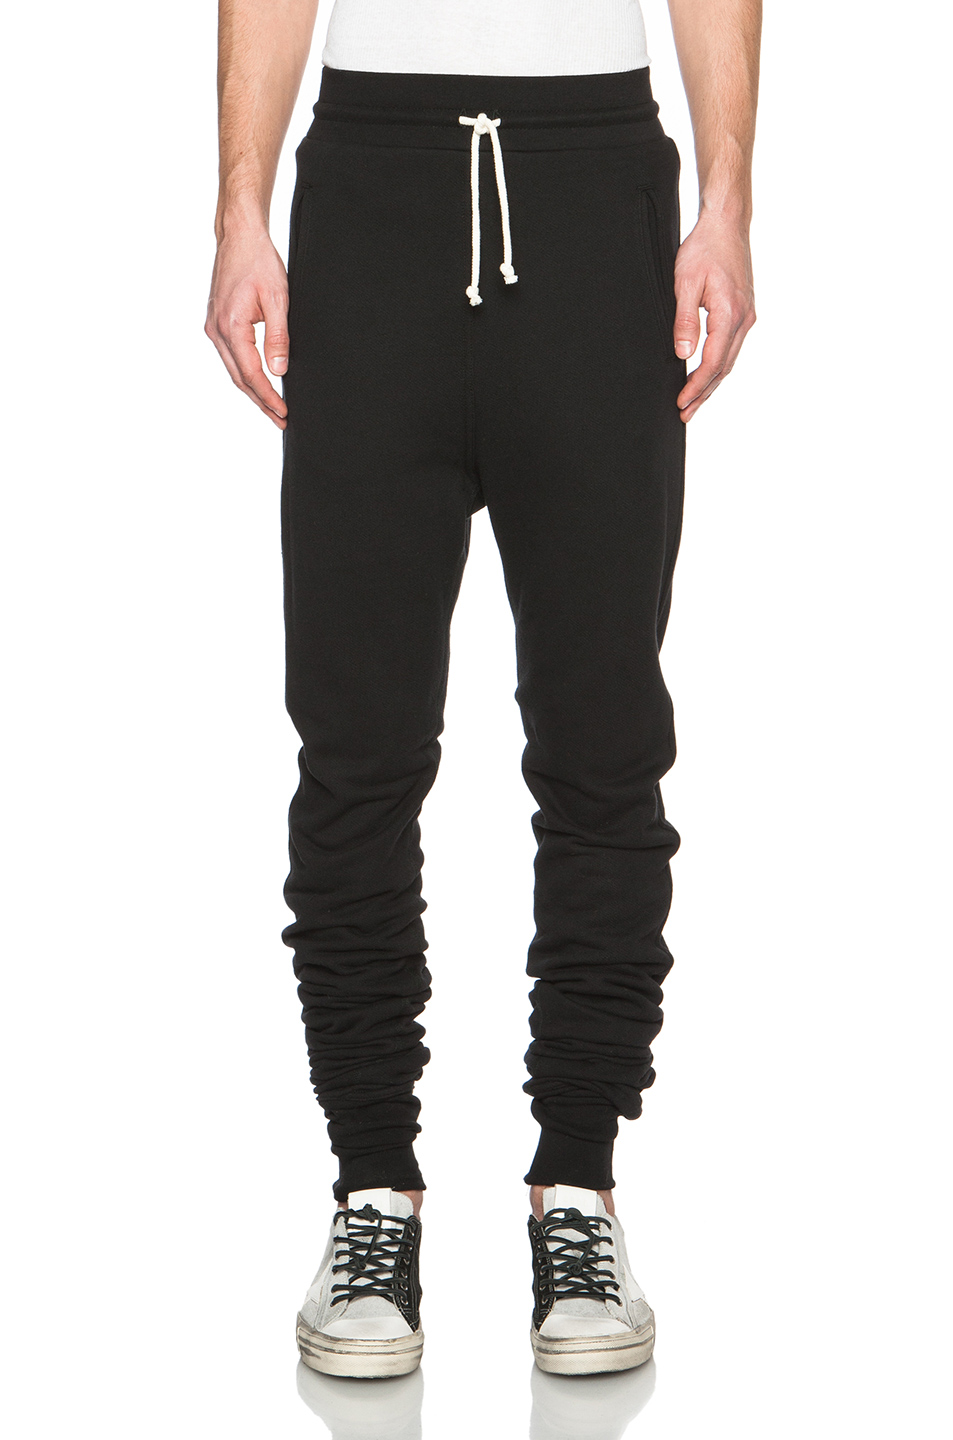 JOHN ELLIOTT Kito Cotton Sweatpants in Black